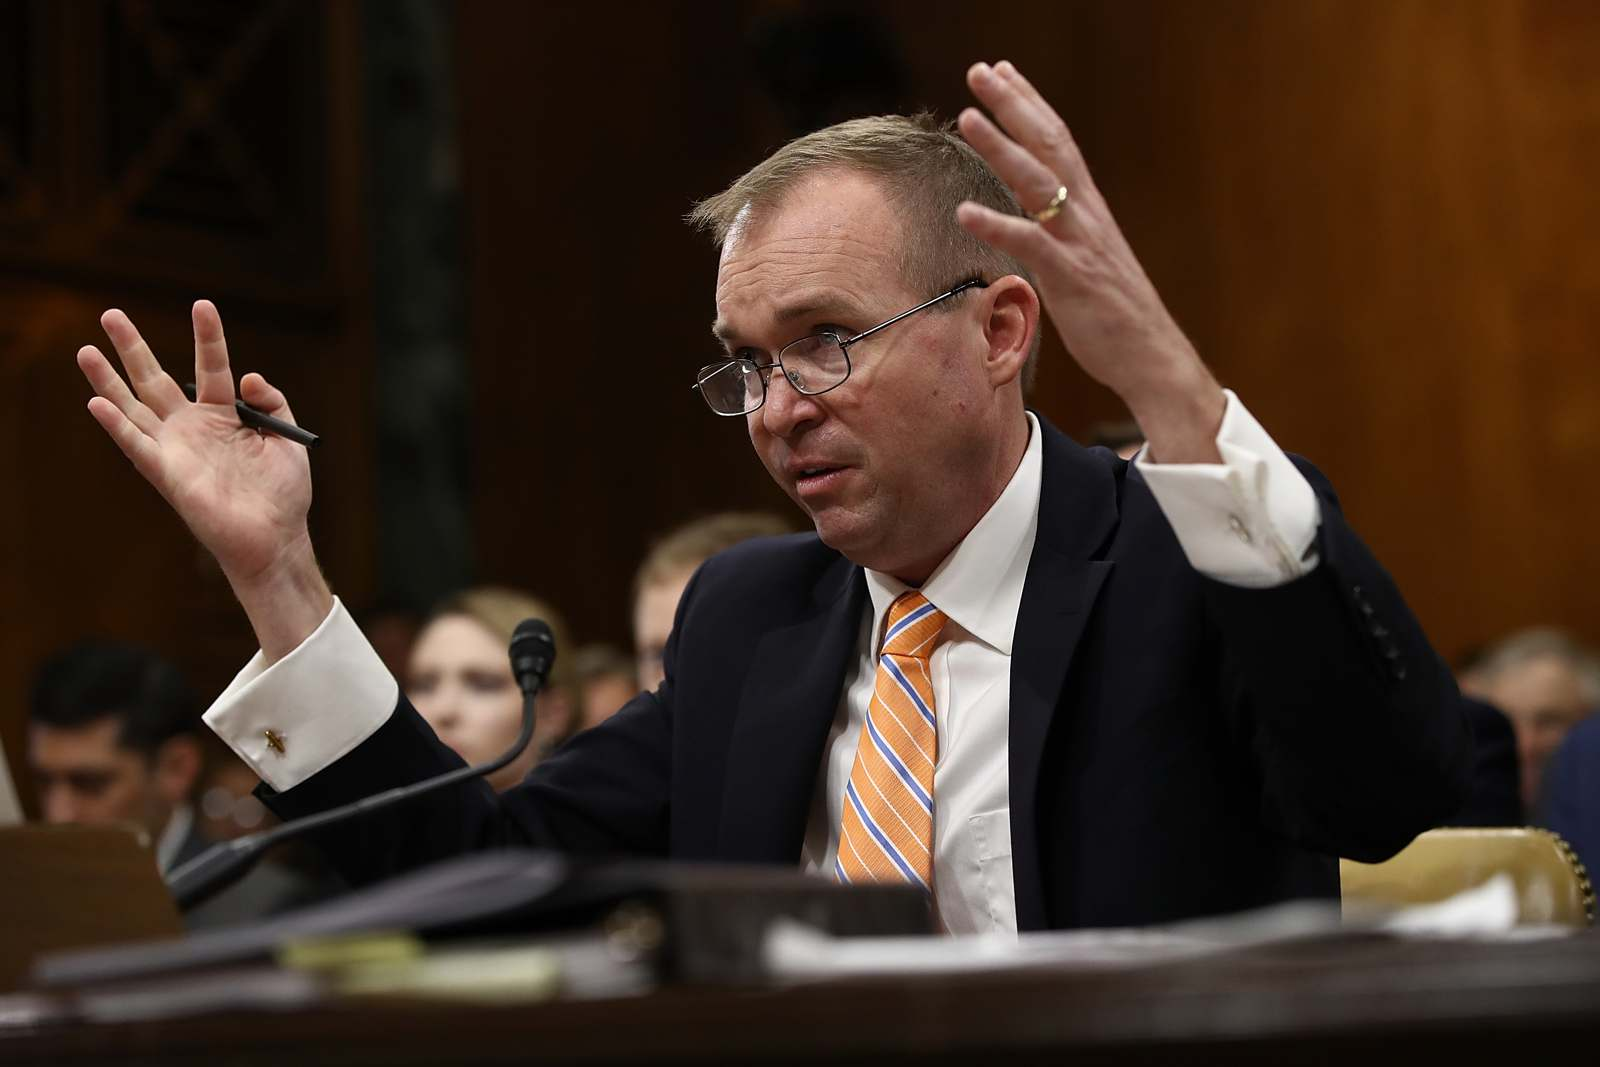 Office of Management and Budget Director Mick Mulvaney testifies, regarding the White House budget proposal, before the Senate Budget Committee May 25, 2017. (Photo by Win McNamee/Getty Images)